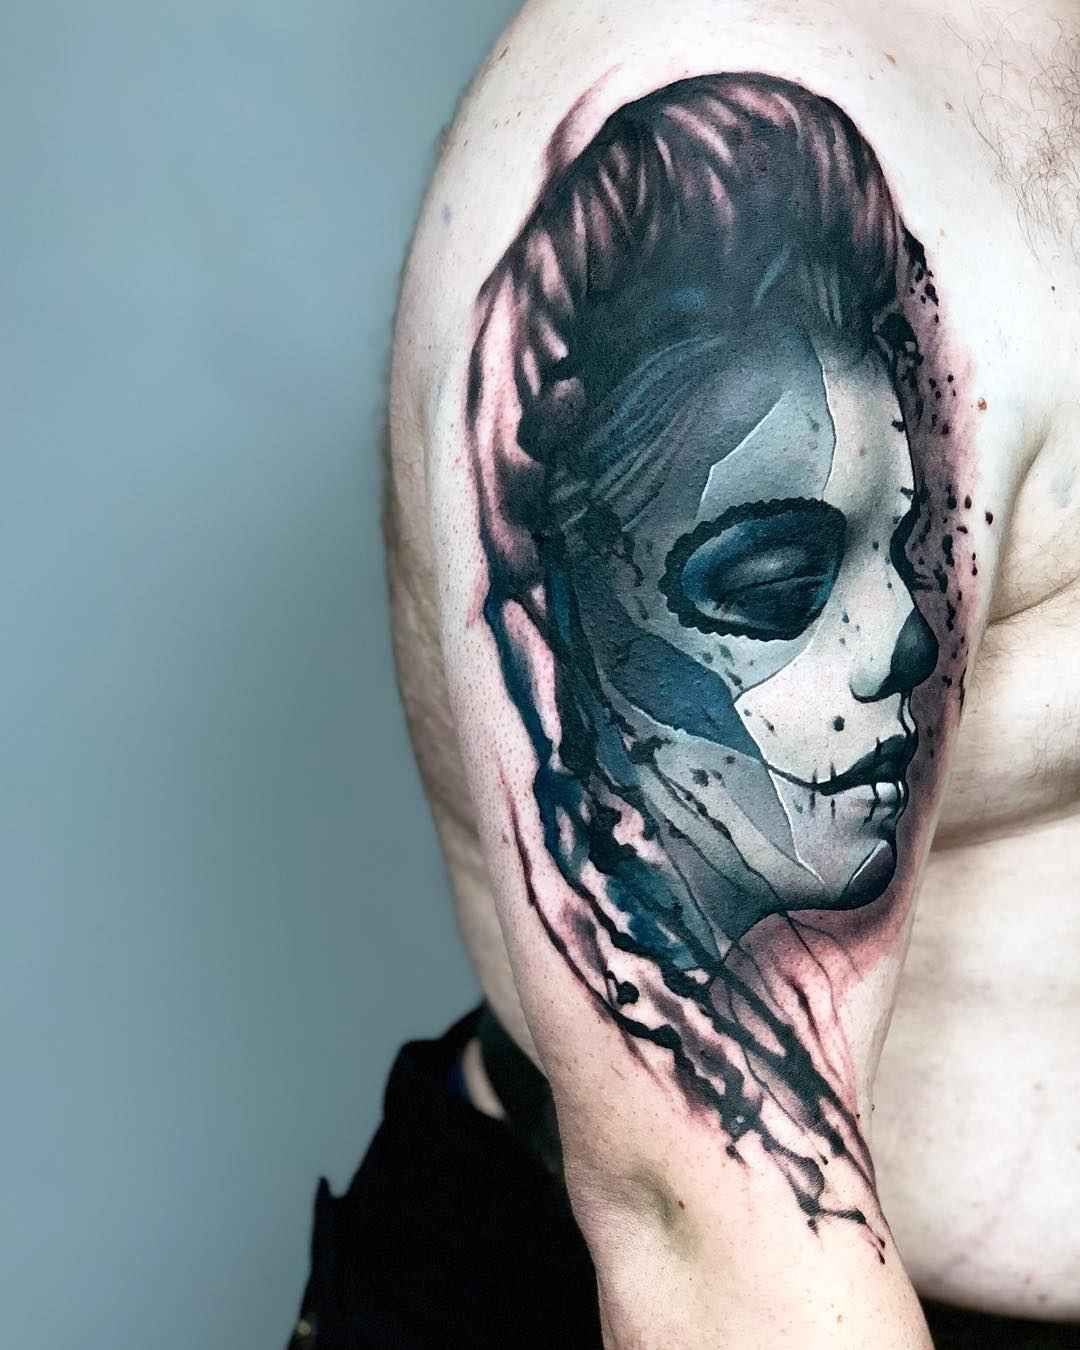 Tattoo Artist Rich Harris Authors Style Color Abstract Portrait Realism Surrealism Uk Abstract Portrait Portrait Tattoo Portrait